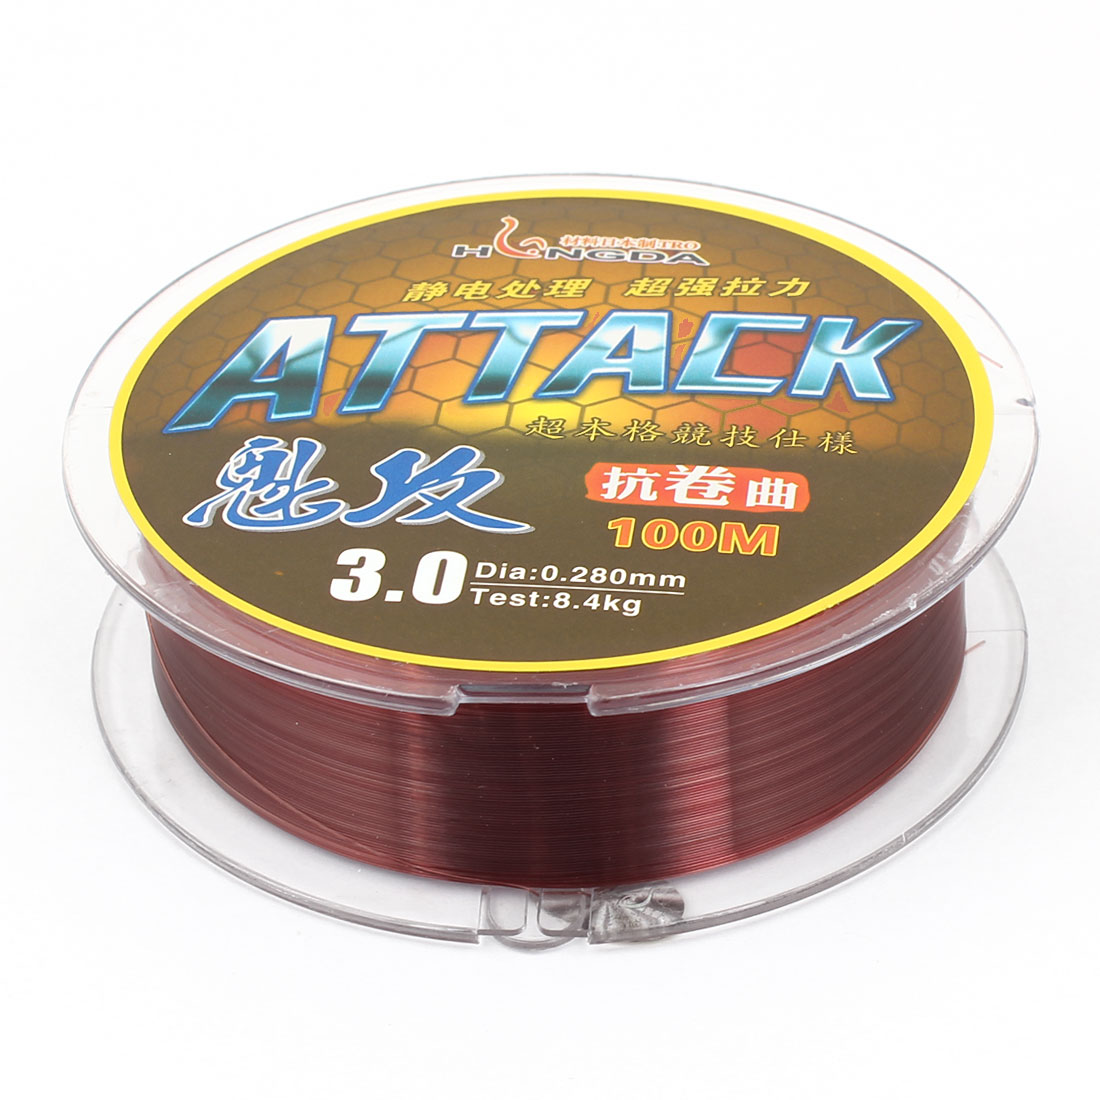 0.280mm Diameter 100M Thread 8.4Kg 18.5 lb Fishing Line Spool Brown